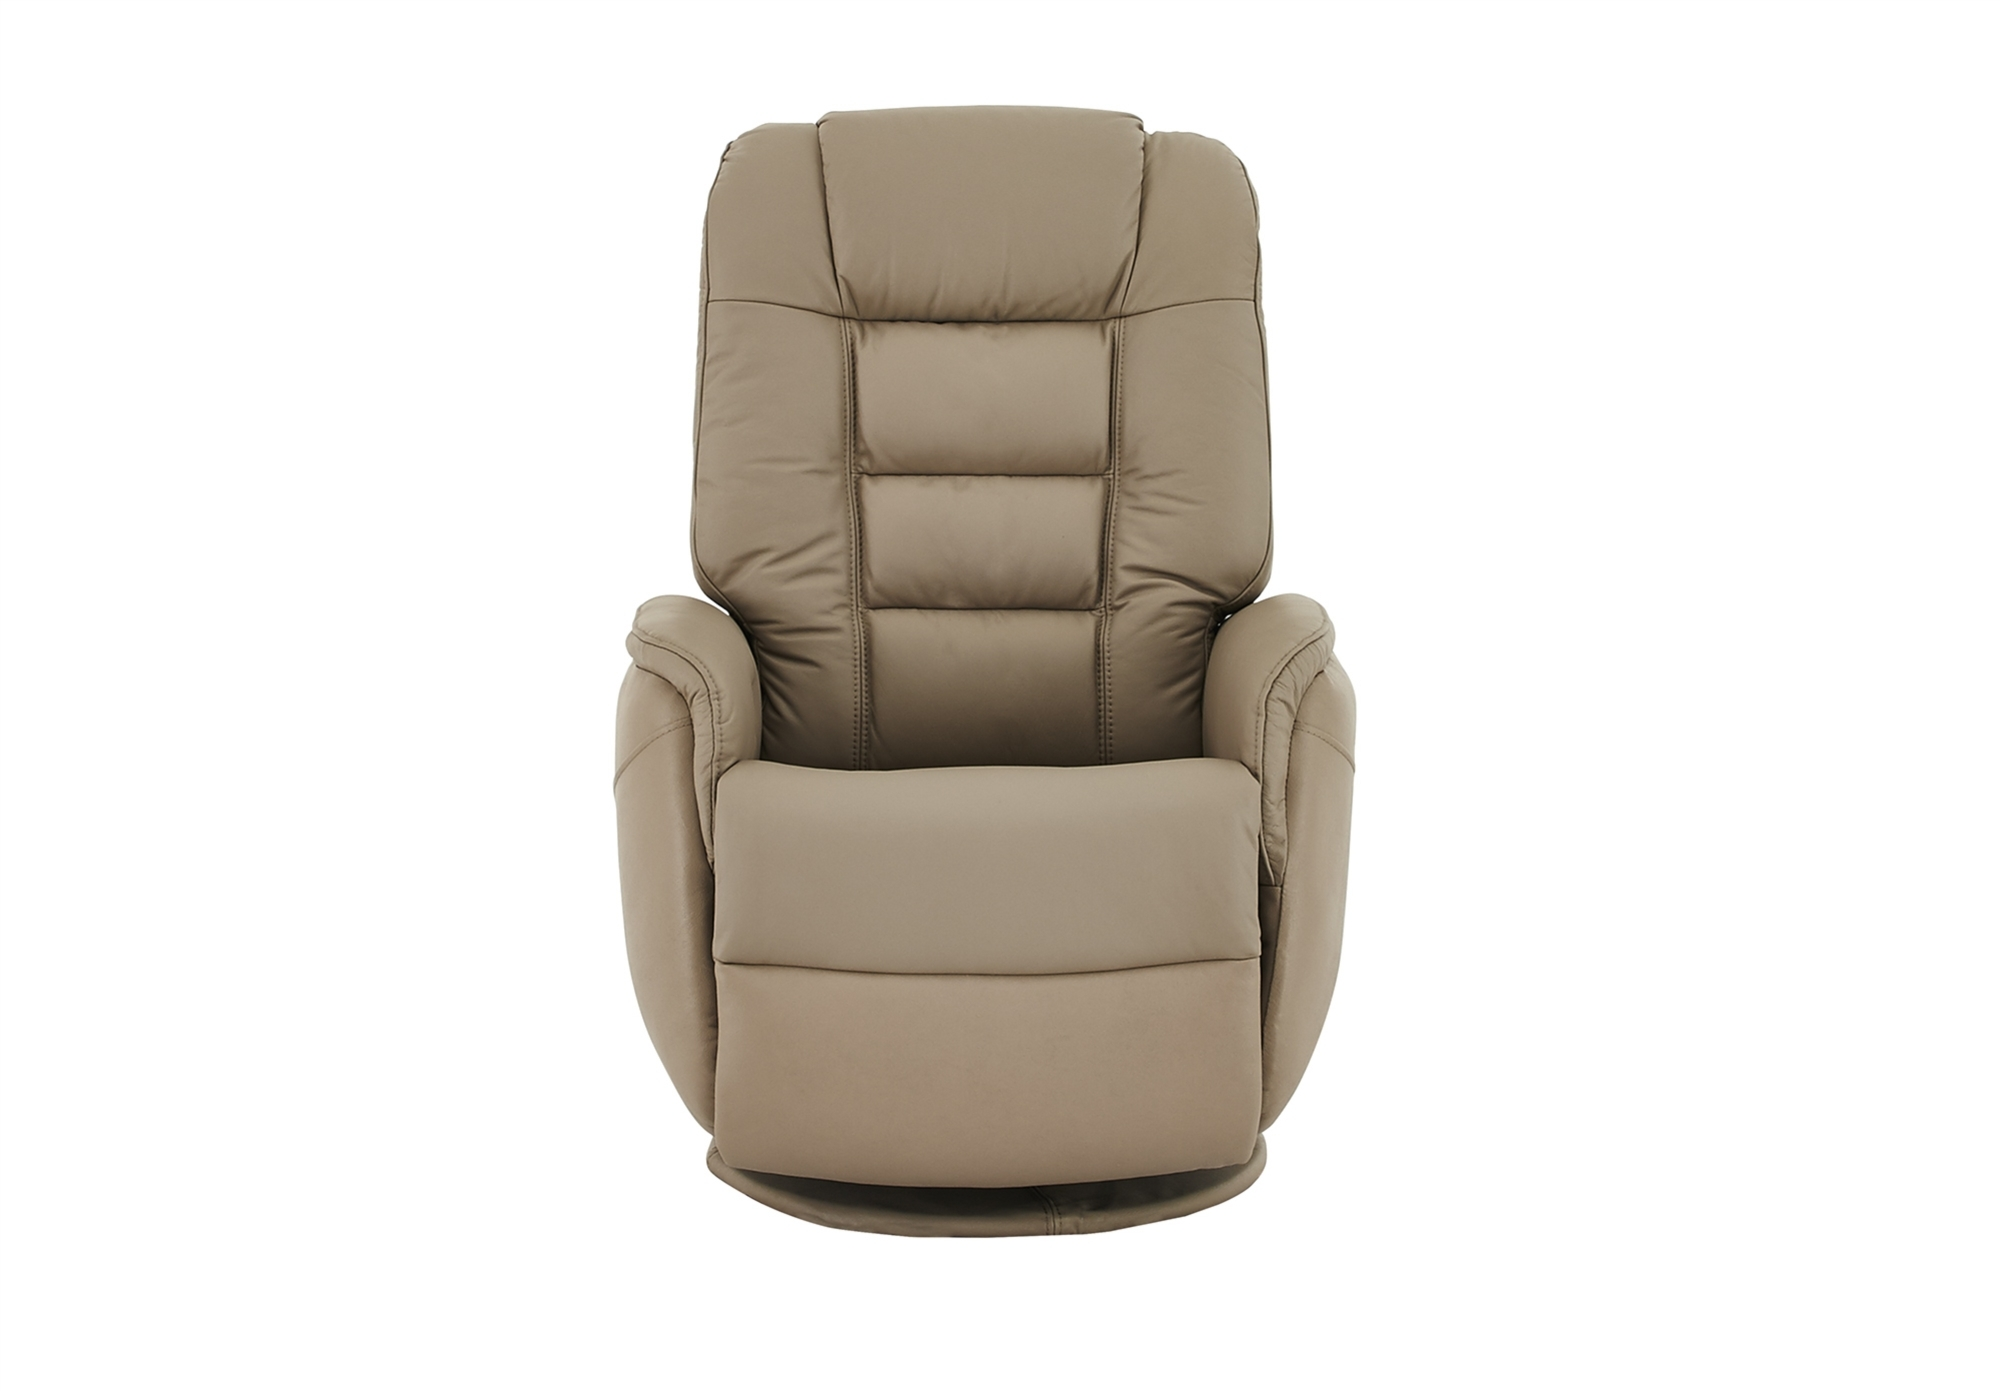 Recliner Chair Naples Furniture Village 895 Looks Narrow In Narrow Armchairs (Image 13 of 15)